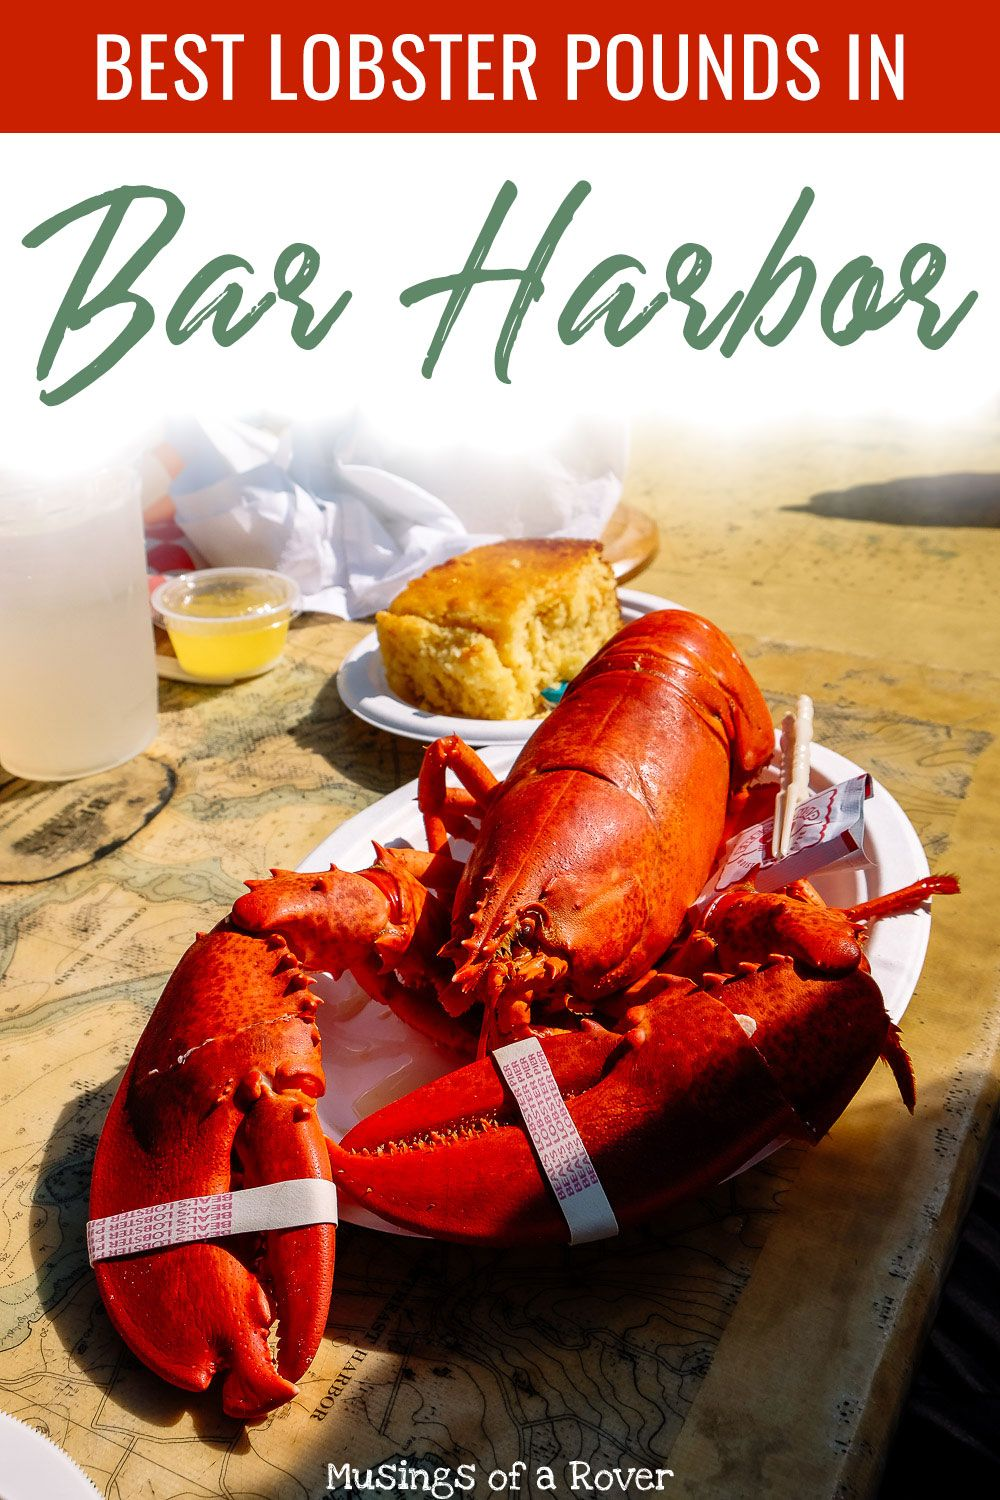 Want to discover the best lobster pounds on Mount Desert Island for your trip to Bar Harbor? Lobster pounds should be local, delicious, and rustic. Plus they should serve the freshest lobster (either whole or by the roll). Discover 5 lobster pounds for your trip!